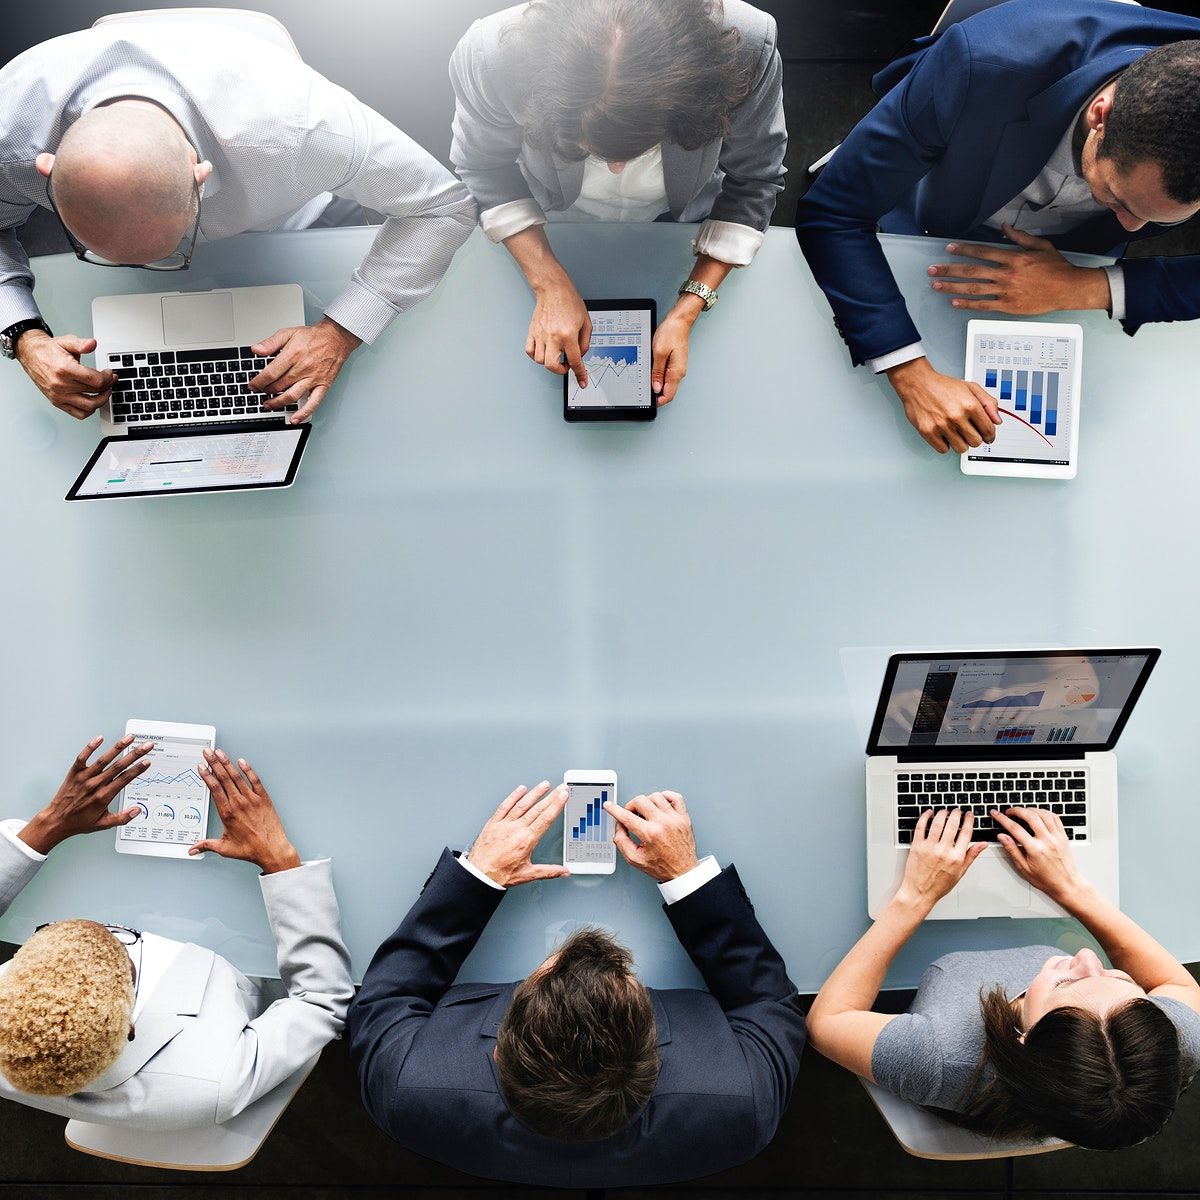 Group of diverse business people are using digital devices